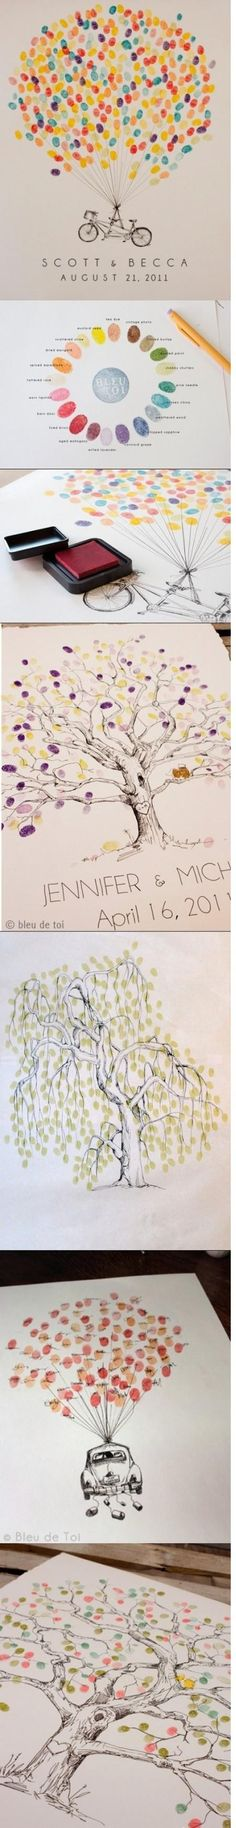 Different fingerprint wedding guest books ideas.